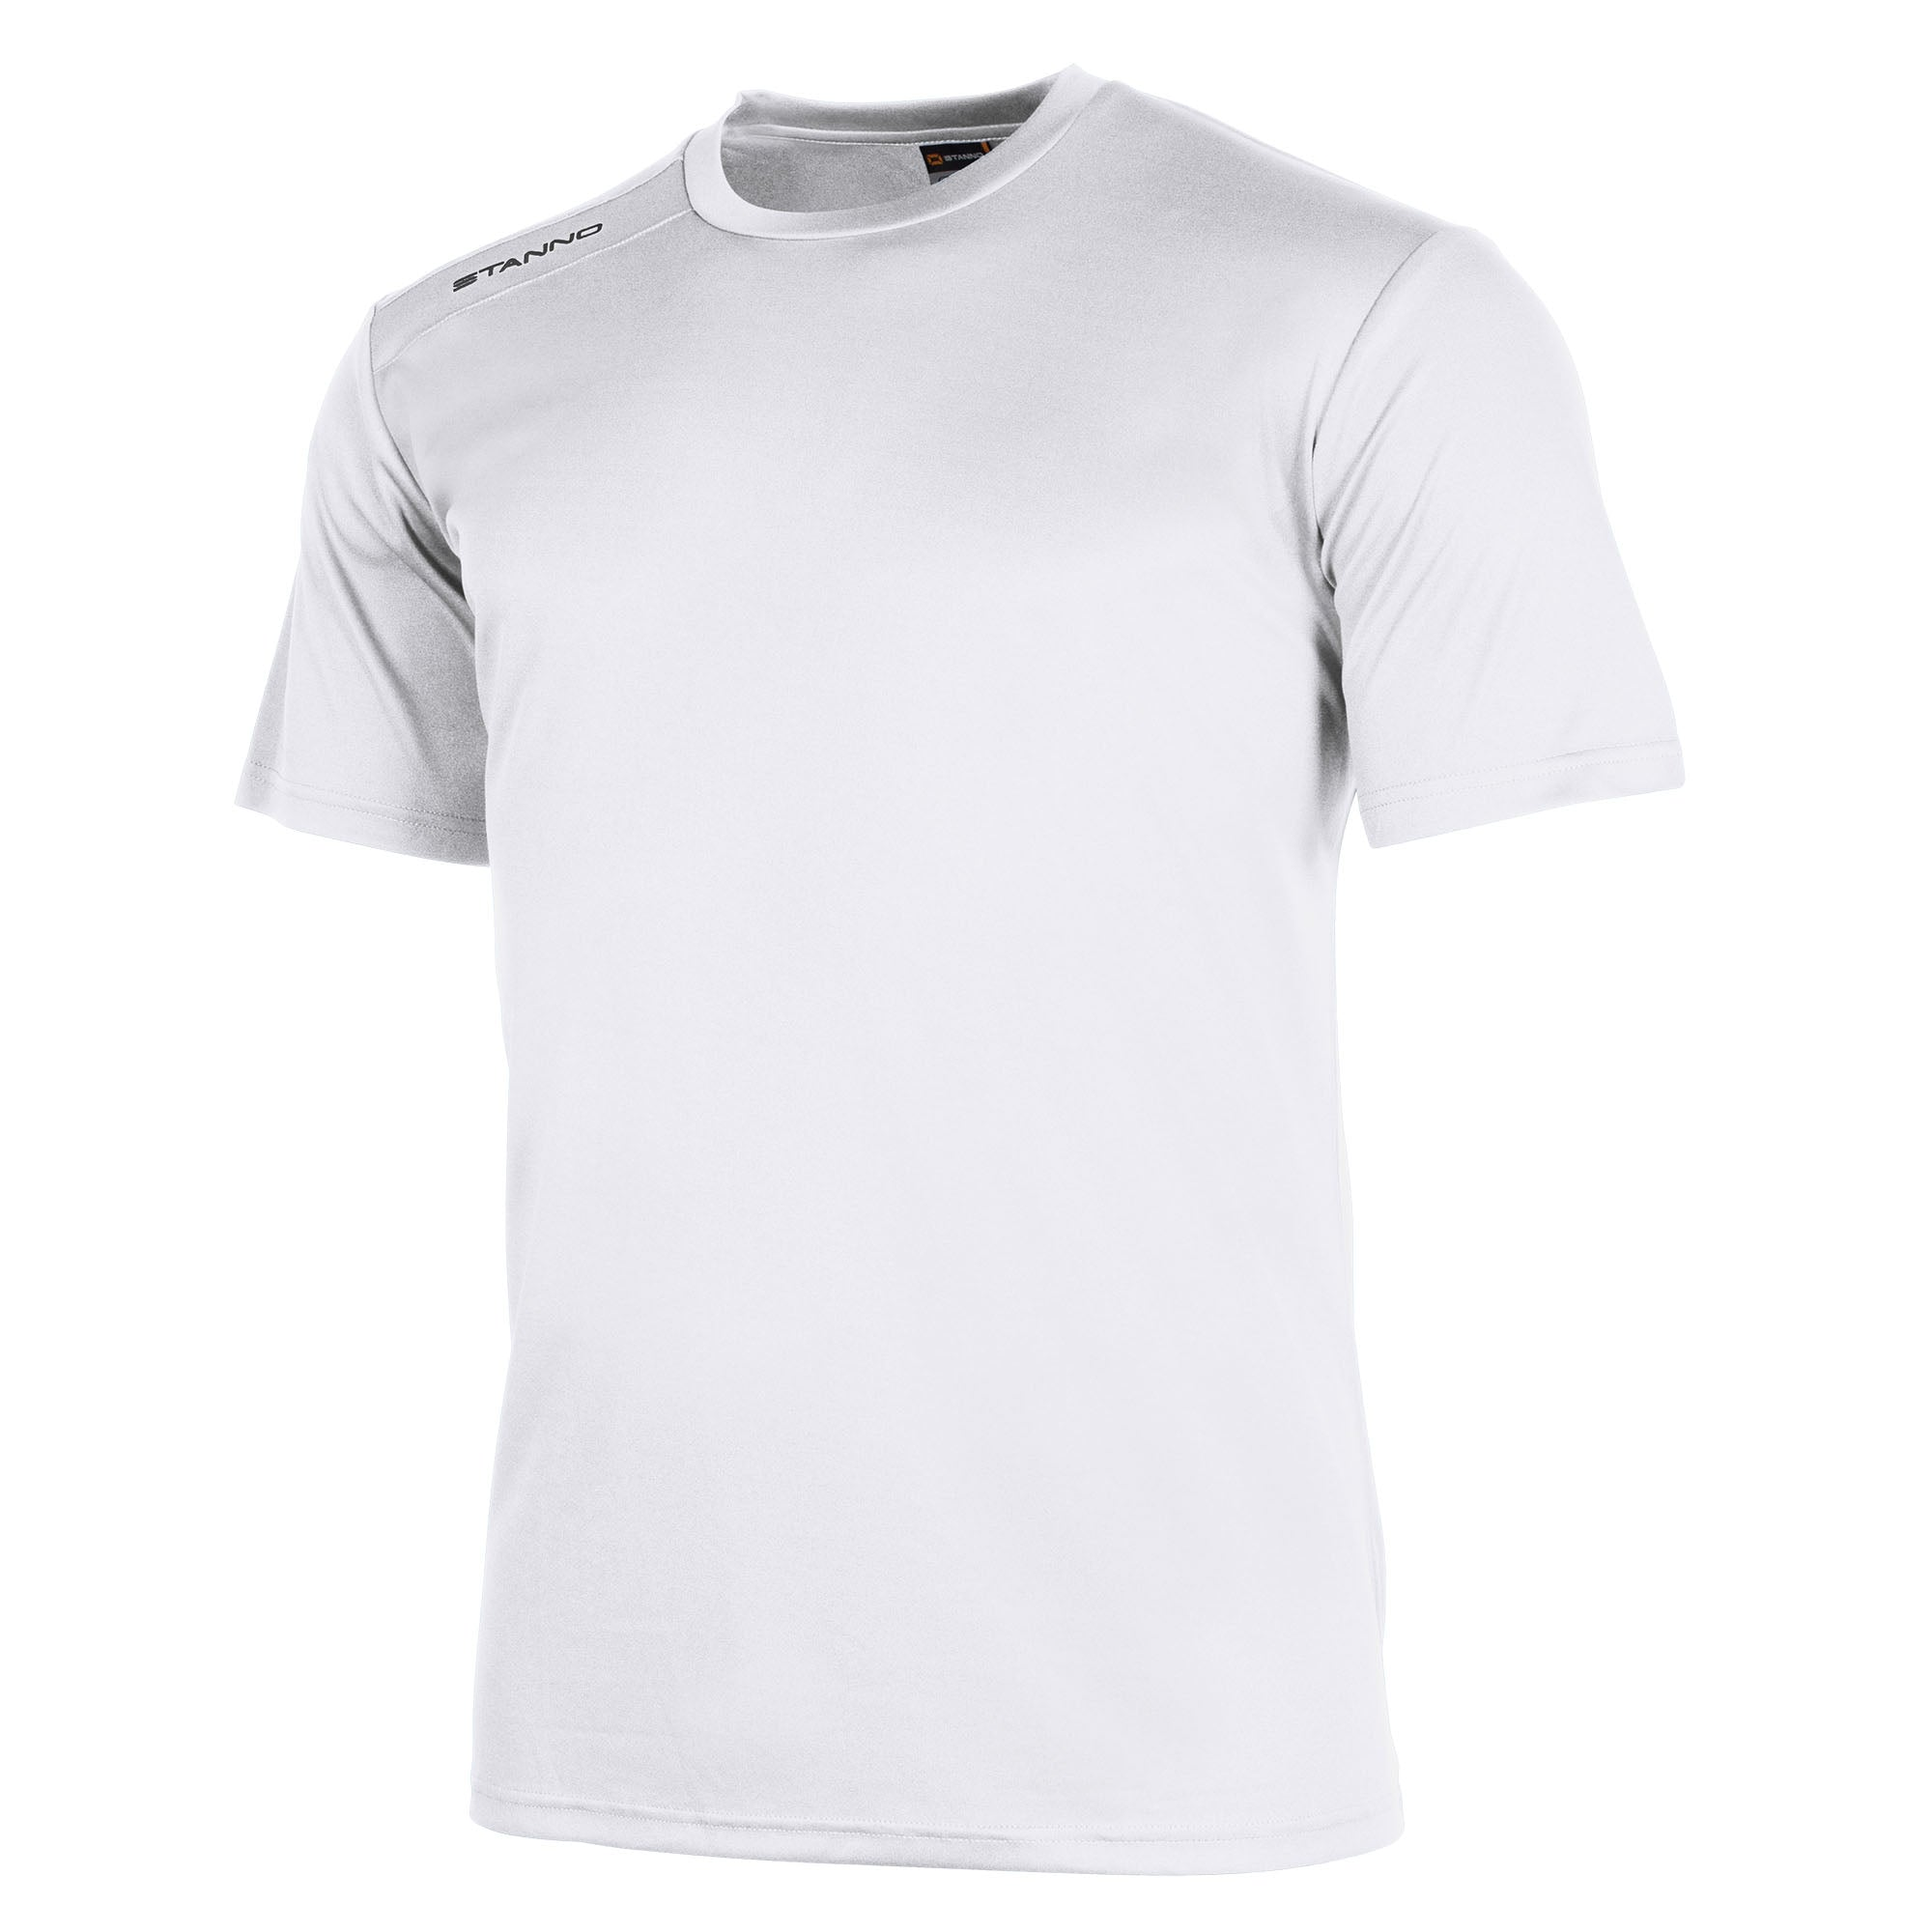 Front of Stanno field short sleeve shirt in white with black Stanno logo on right shoulder